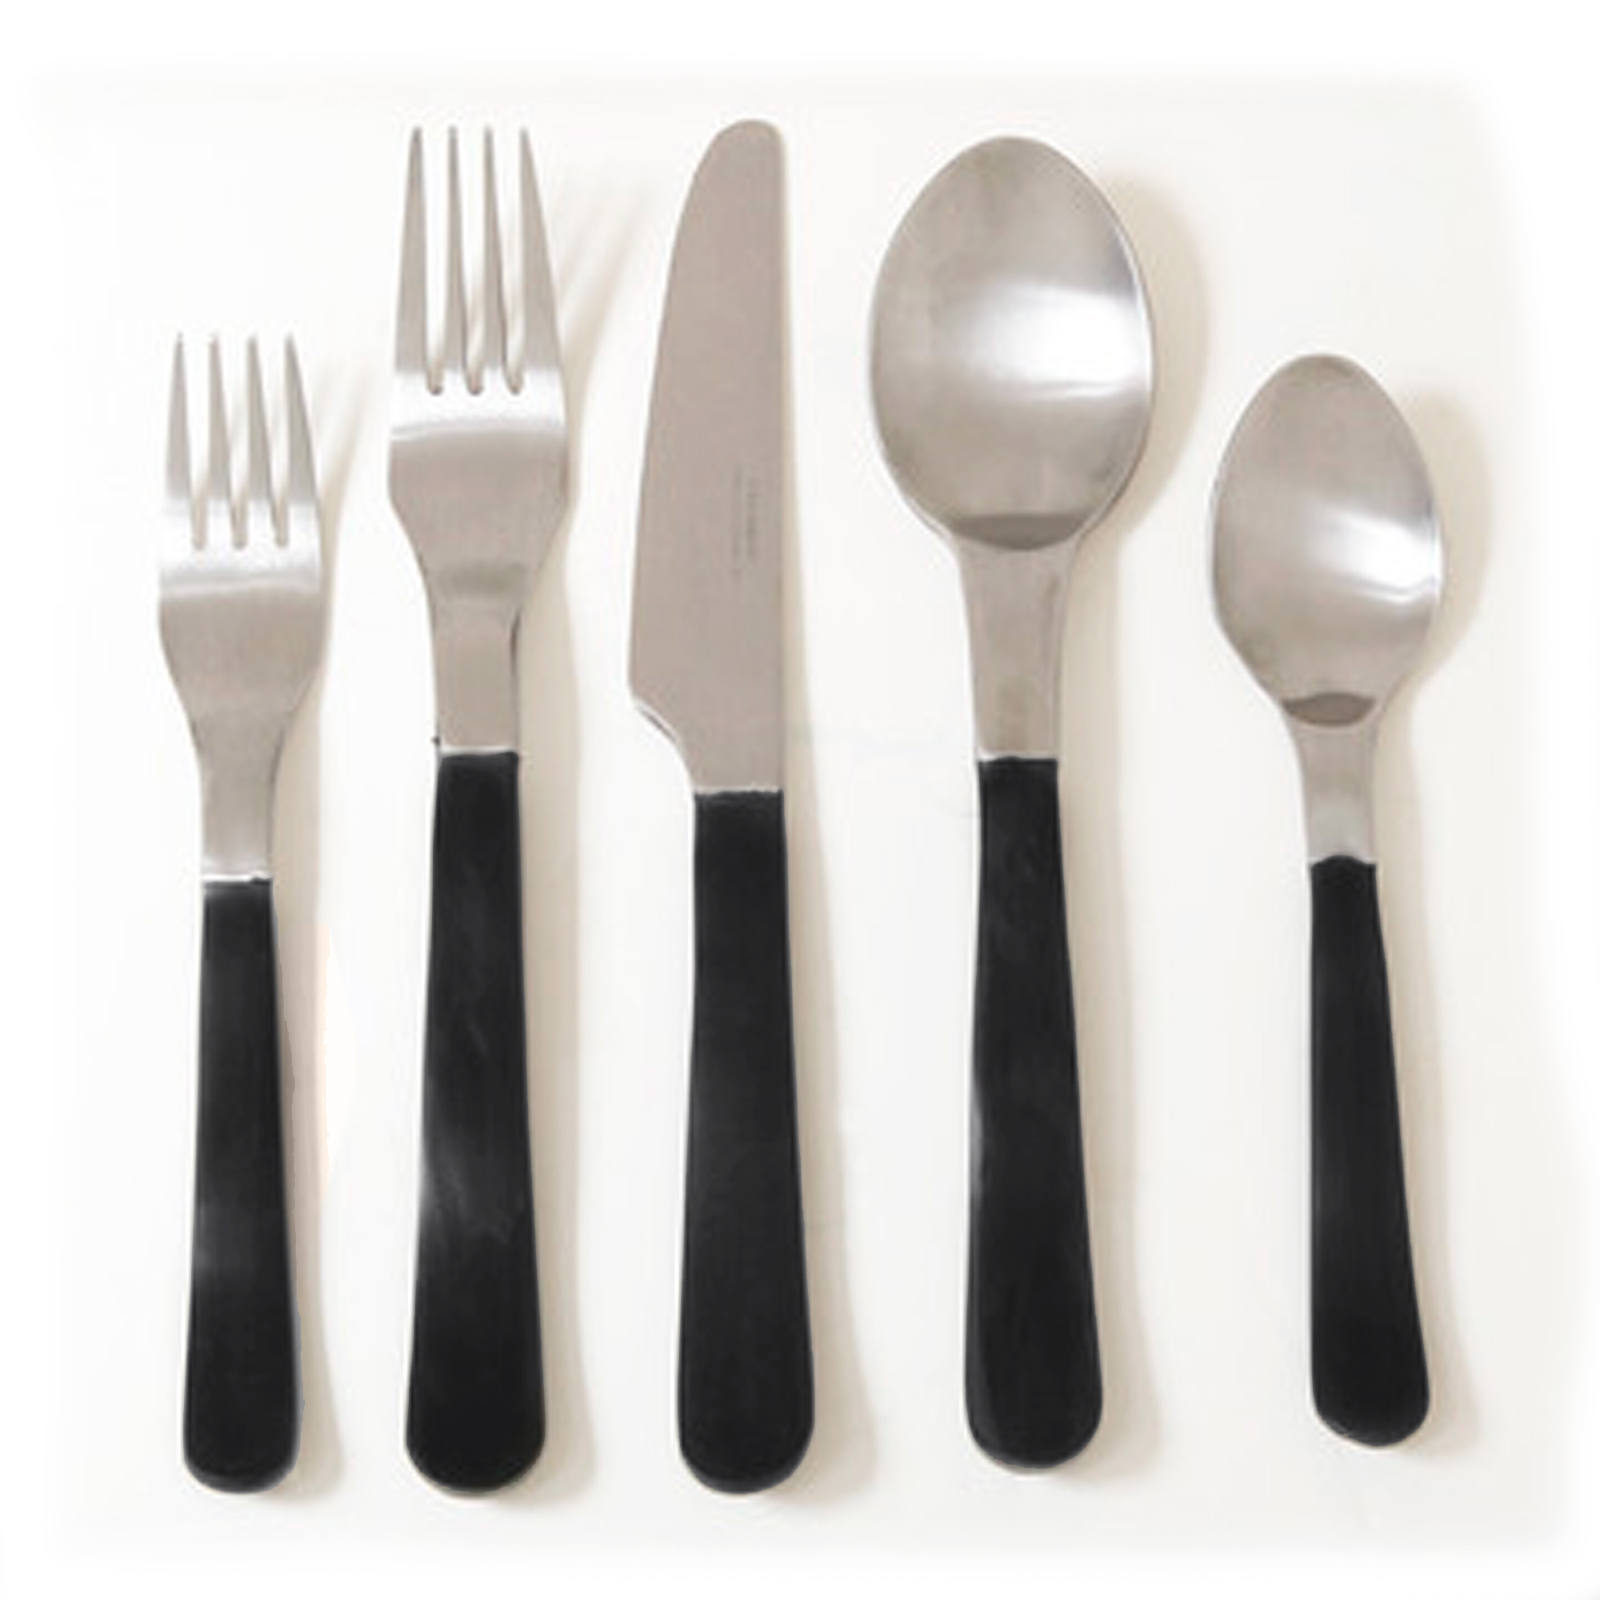 Contemporary Stainless Steel Flatware Gibson Luxton 20 Piece Stainless Steel Flatware Set